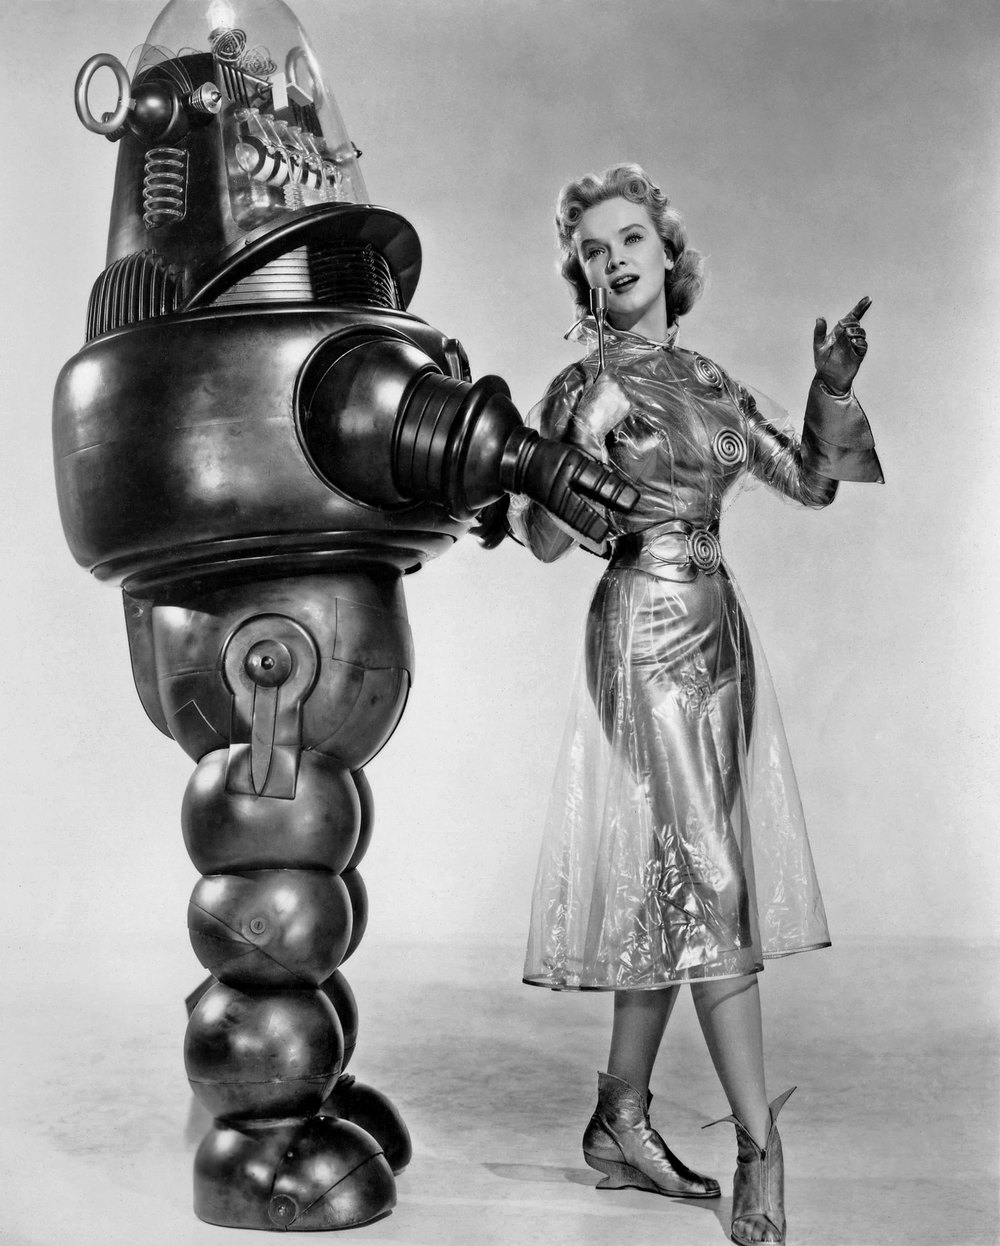 Behold! Science Fiction! Fictional Science! ROBOTS! (And attractive ladies in unlikely wardrobes.)